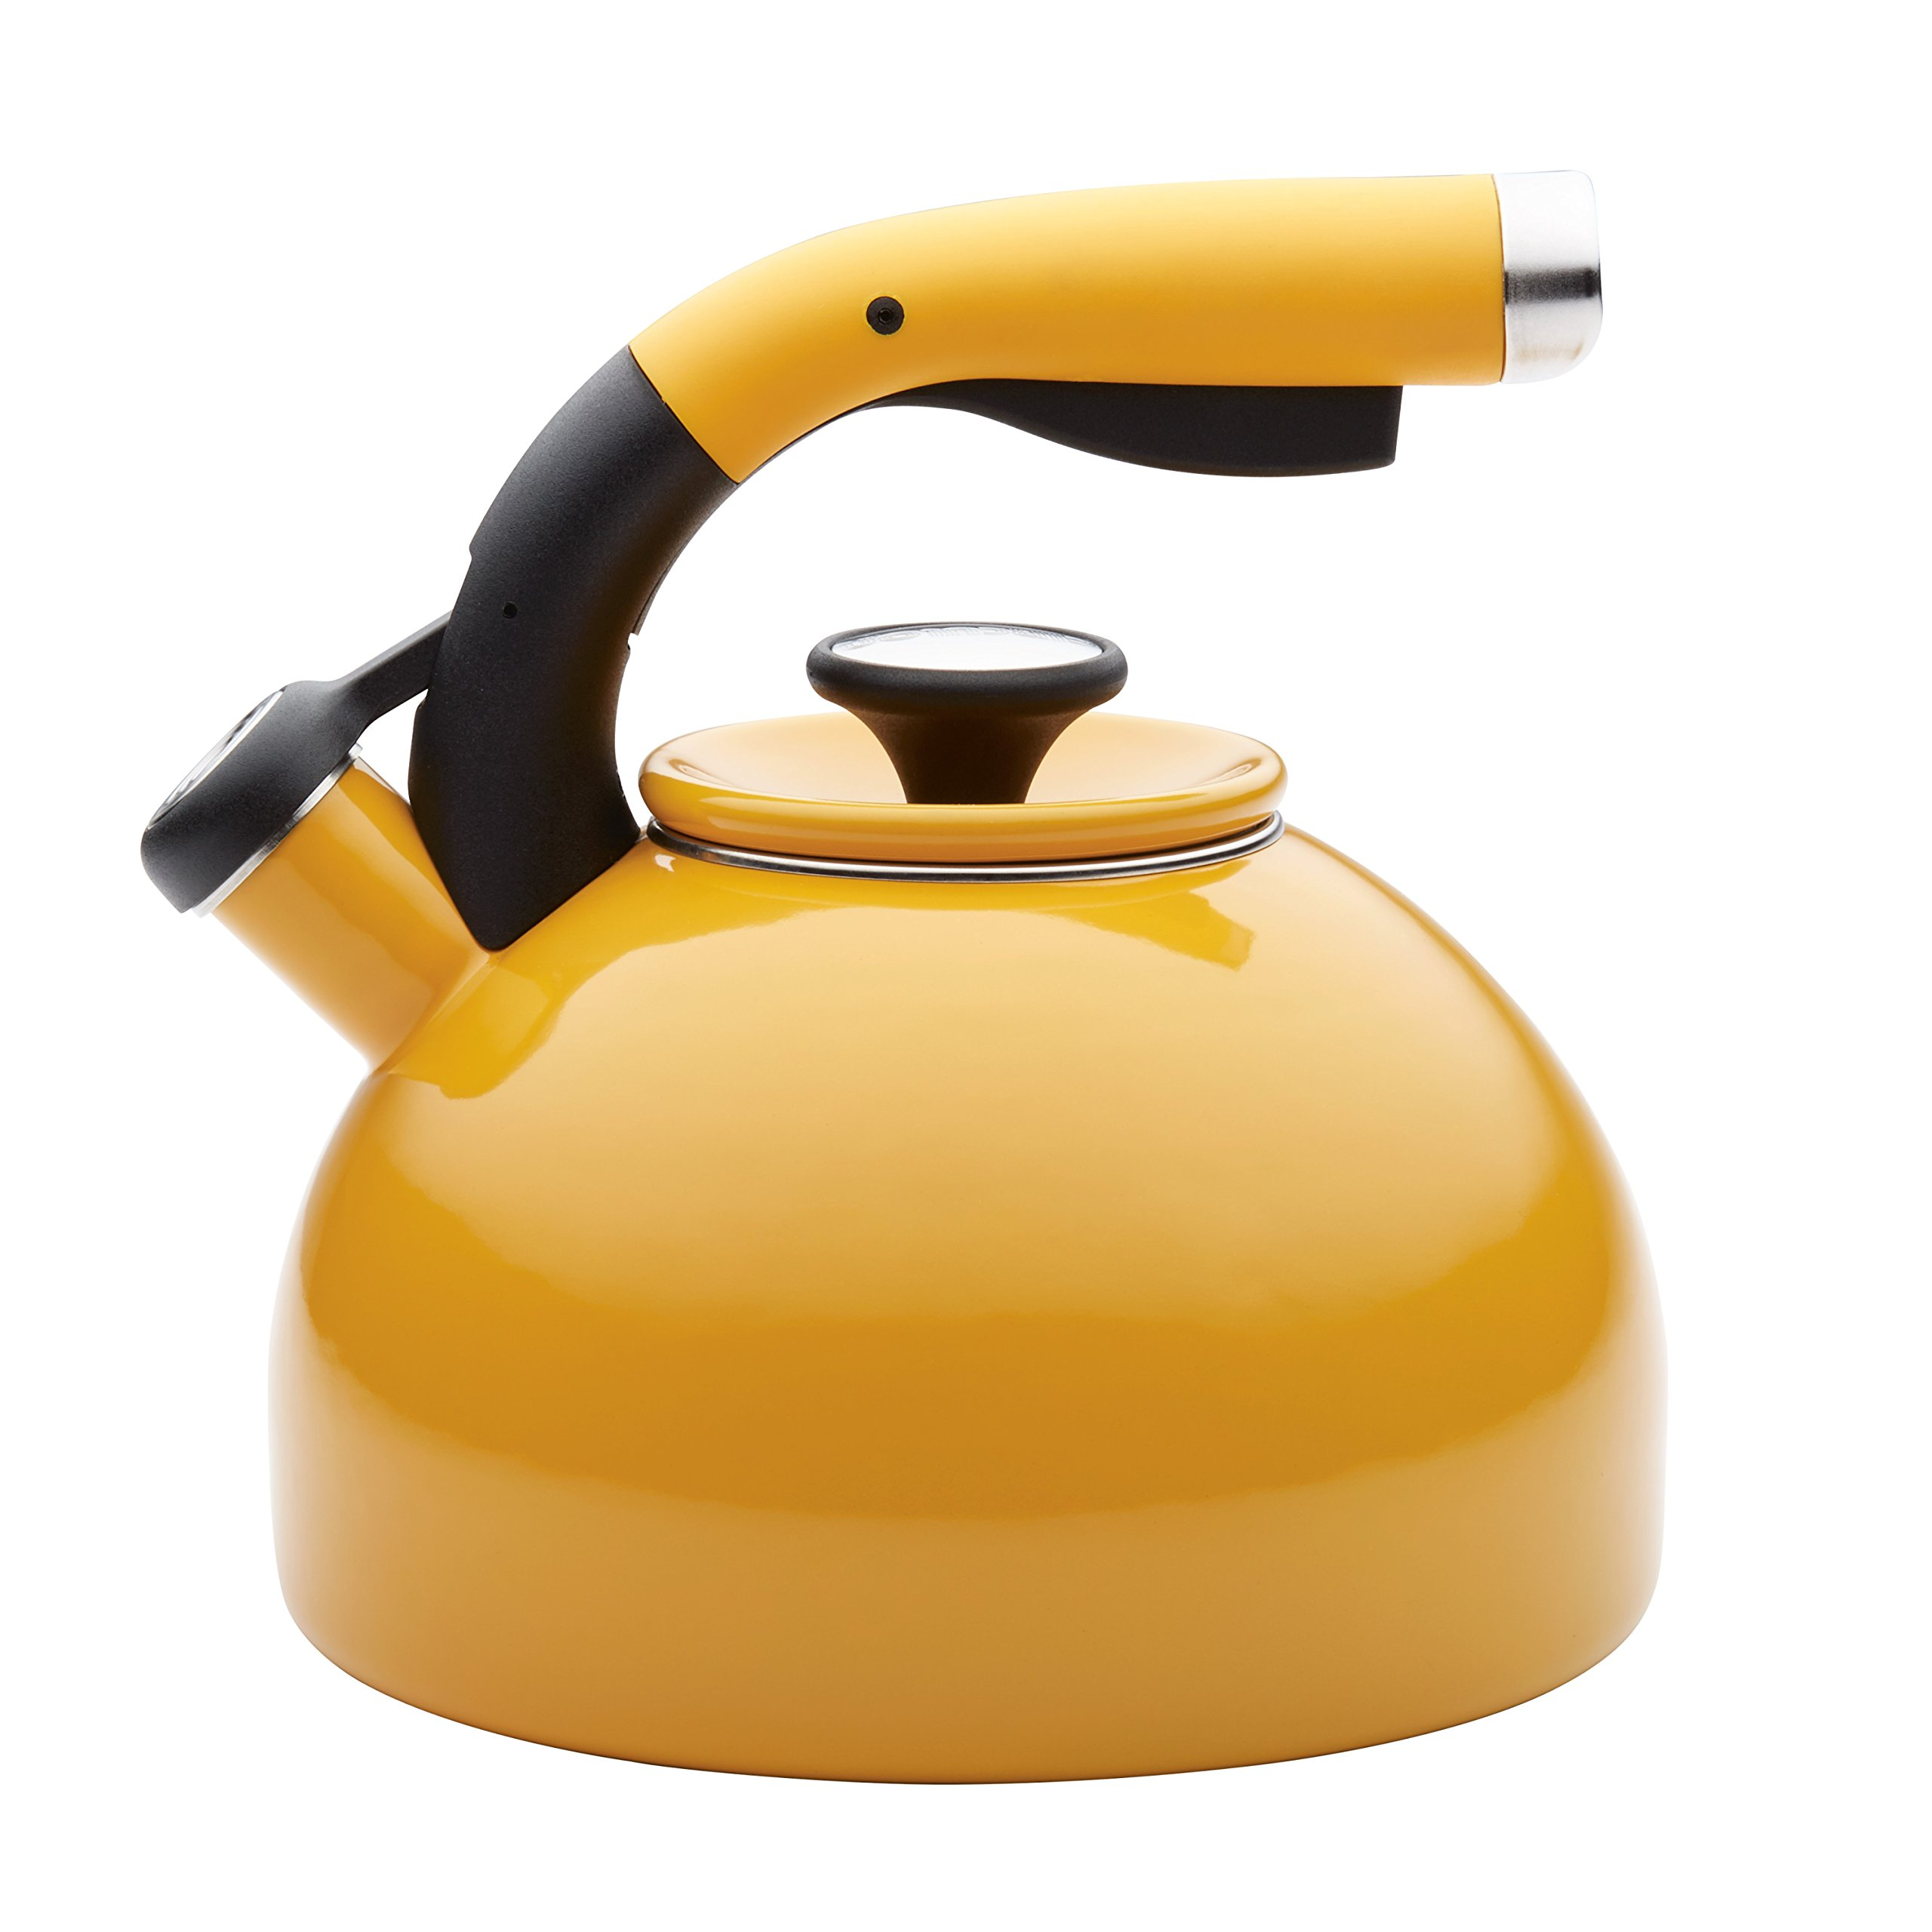 Circulon 2-Quart Morning Bird Teakettle, Mustard Yellow